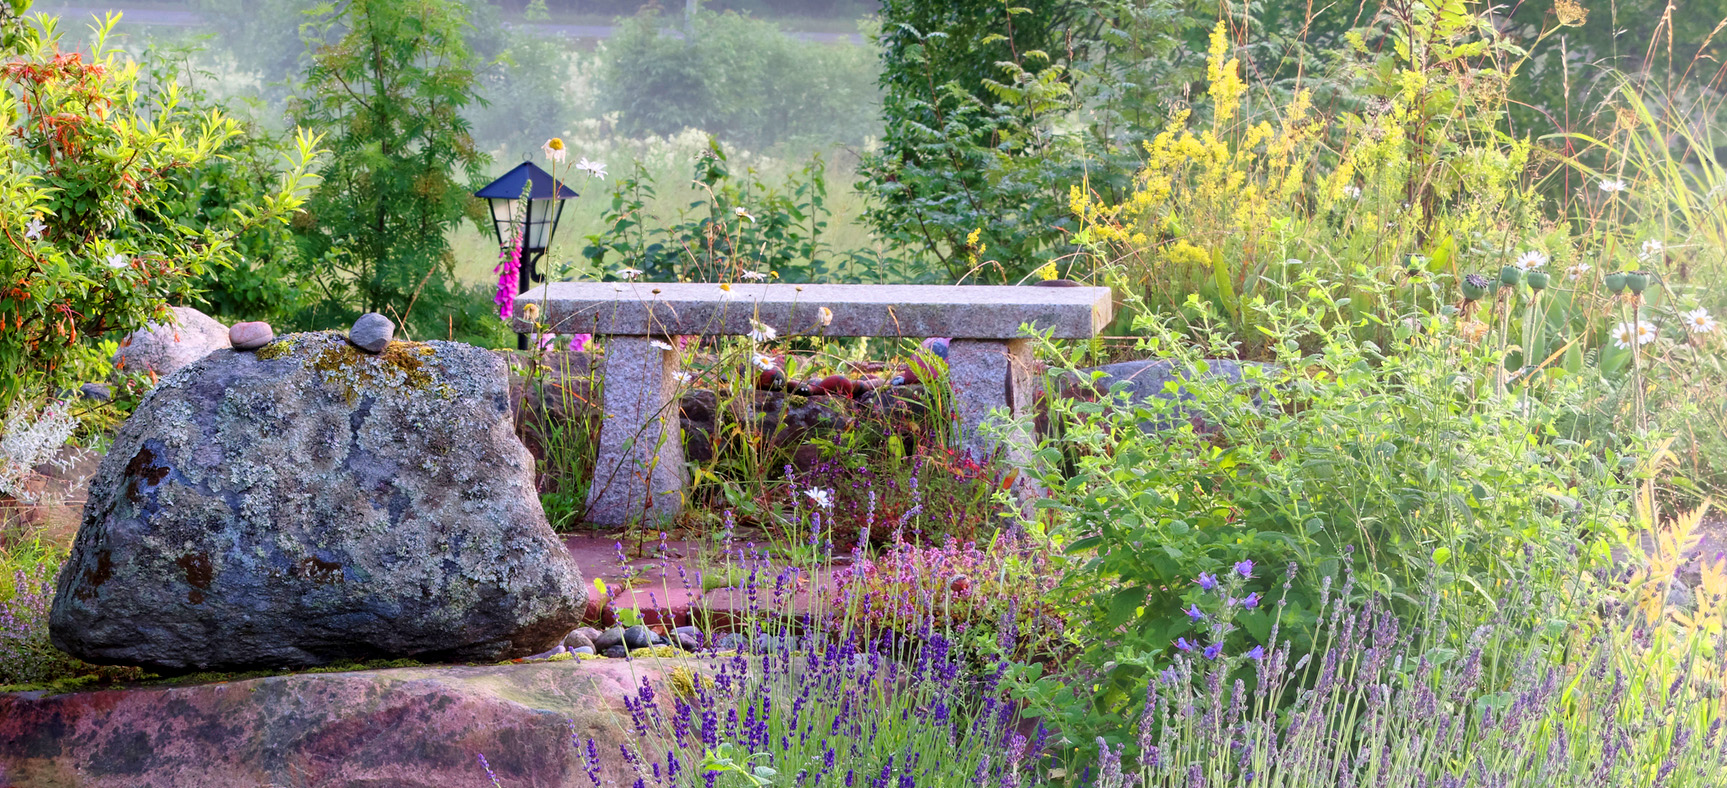 Garden Design Trends 2016 the top 6 landscape design trends for 2016 | arizona real estate